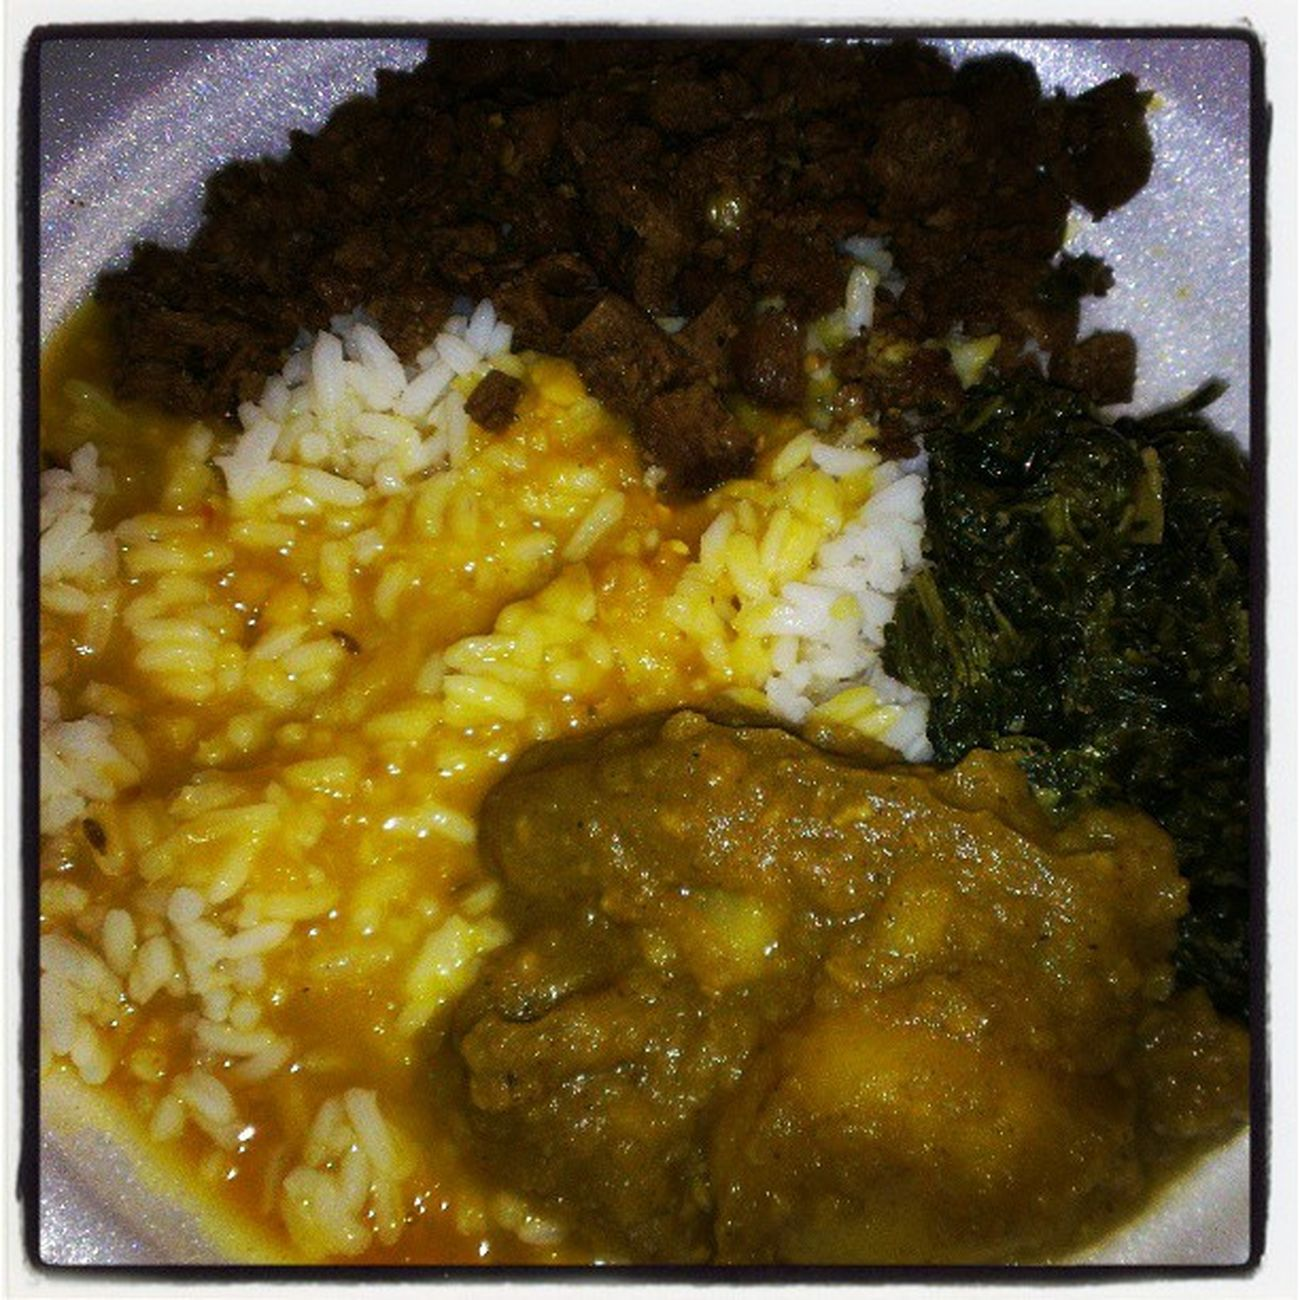 The best breakfast ever!!! Bhojan Jhandihousefood Rice Dhall aloocurry bhagee soychunks nuffsaid plentyblessings ramram TGIF goingin @rosebacchanalradio @guccilisalisa3 @justaskannie